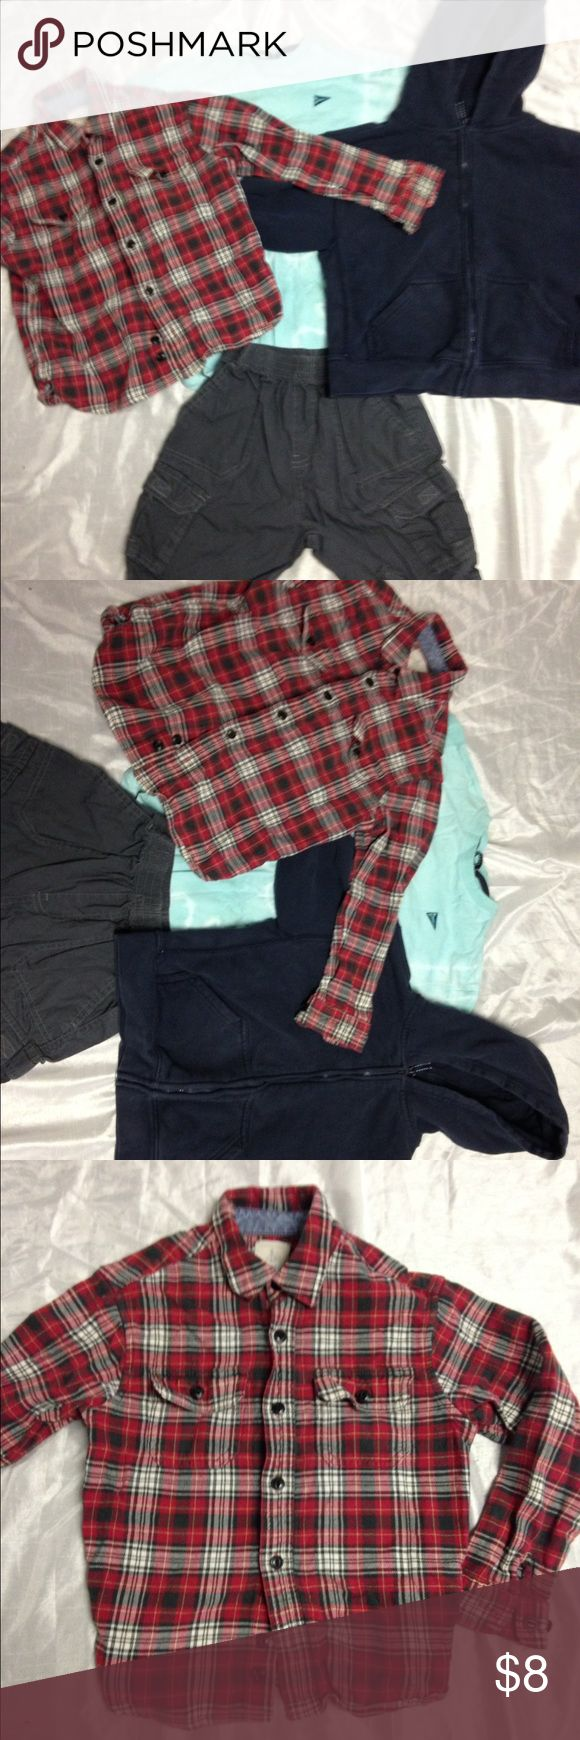 Bundle Lands End 4 pieces Kid Boy size 6-8 This is a bundle of 4 pieces with: 1) one Lands end squares button down shirts size 7, 2) one Lands End hoodie size 6-7, 3) one Lands end tee size 8 and 4) one grey Faded Glory size 6. Incredible price for 4 pieces!!! Lands' End Shirts & Tops Button Down Shirts